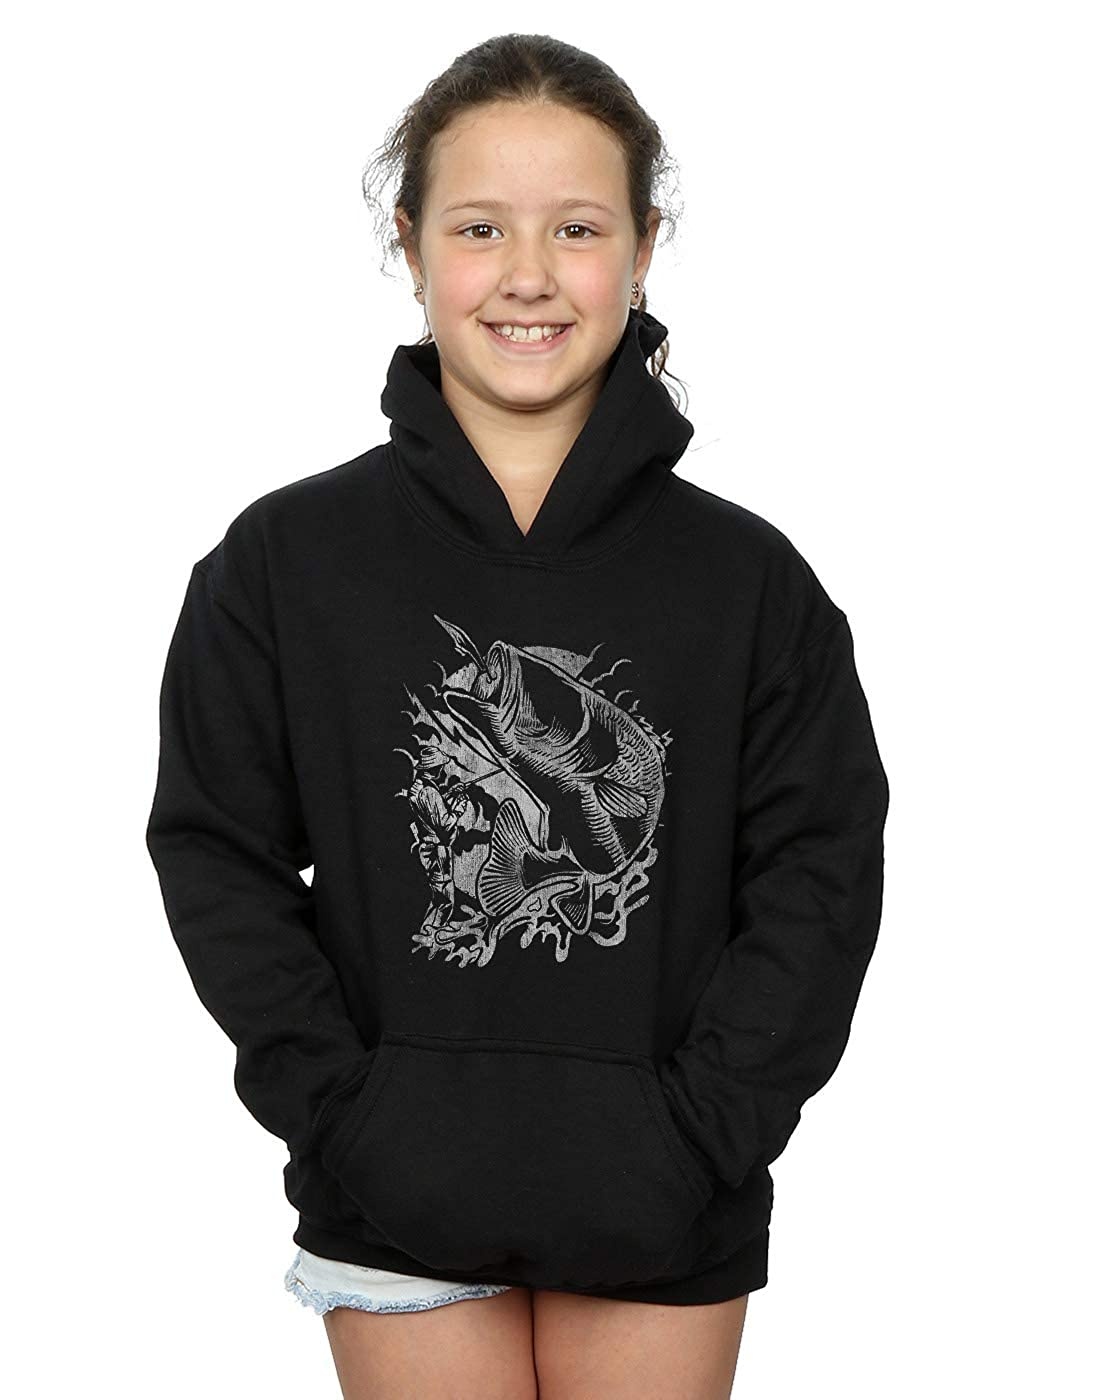 Absolute Cult Drewbacca Girls Fishermans Catch Hoodie